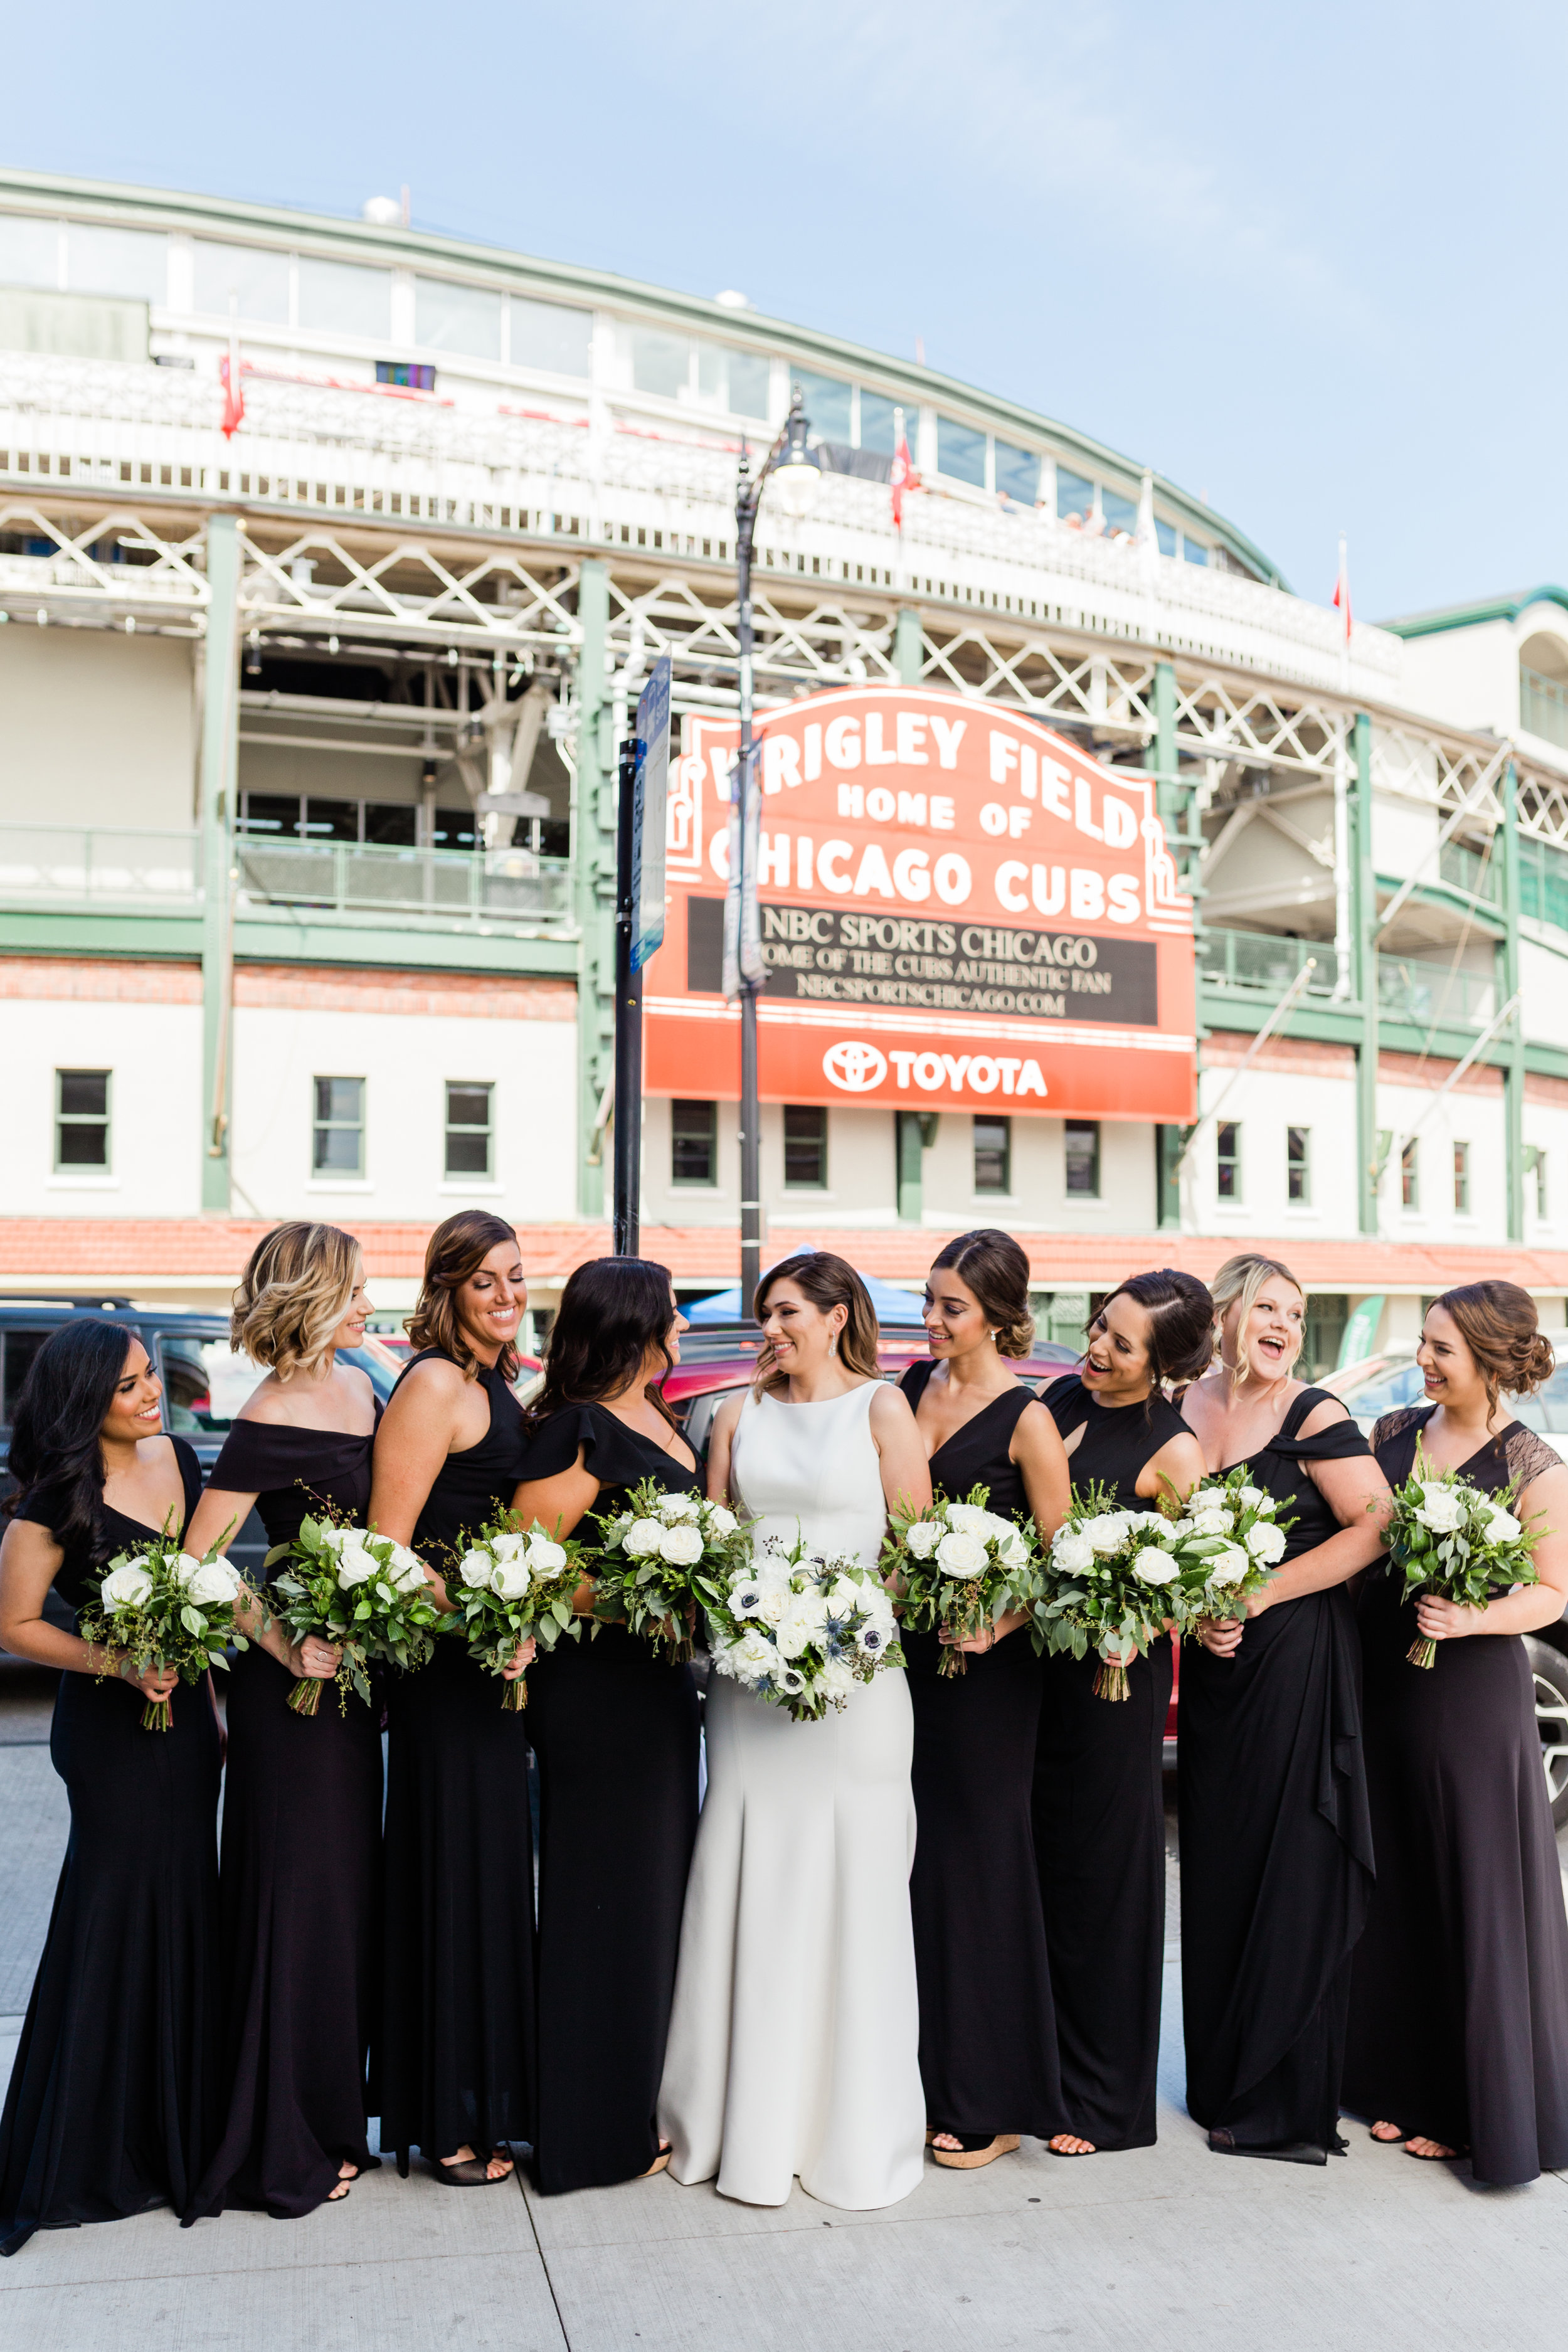 Elegant Black Bridesmaid Gowns Chicago Wedding Lindsey Taylor Photography